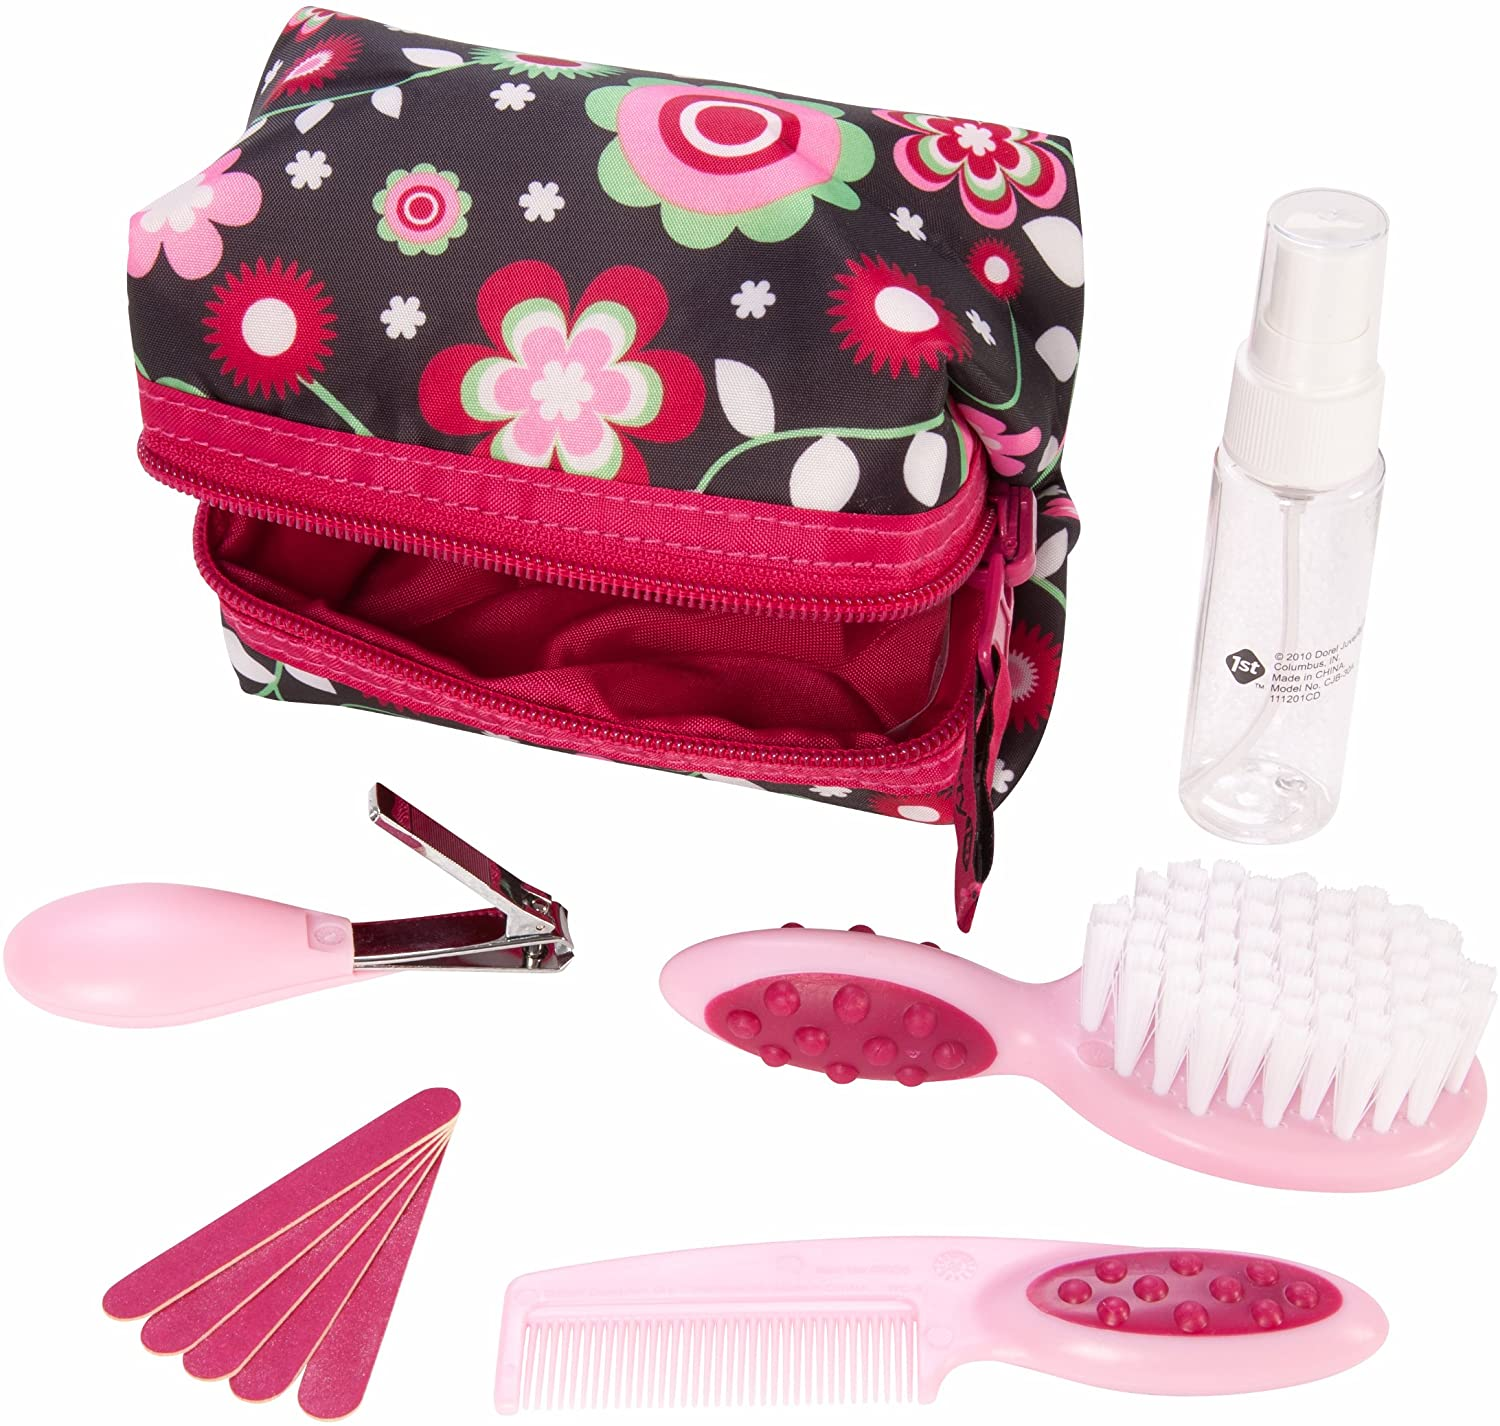 Kit Higiene e Beleza Rosa Safety 1st